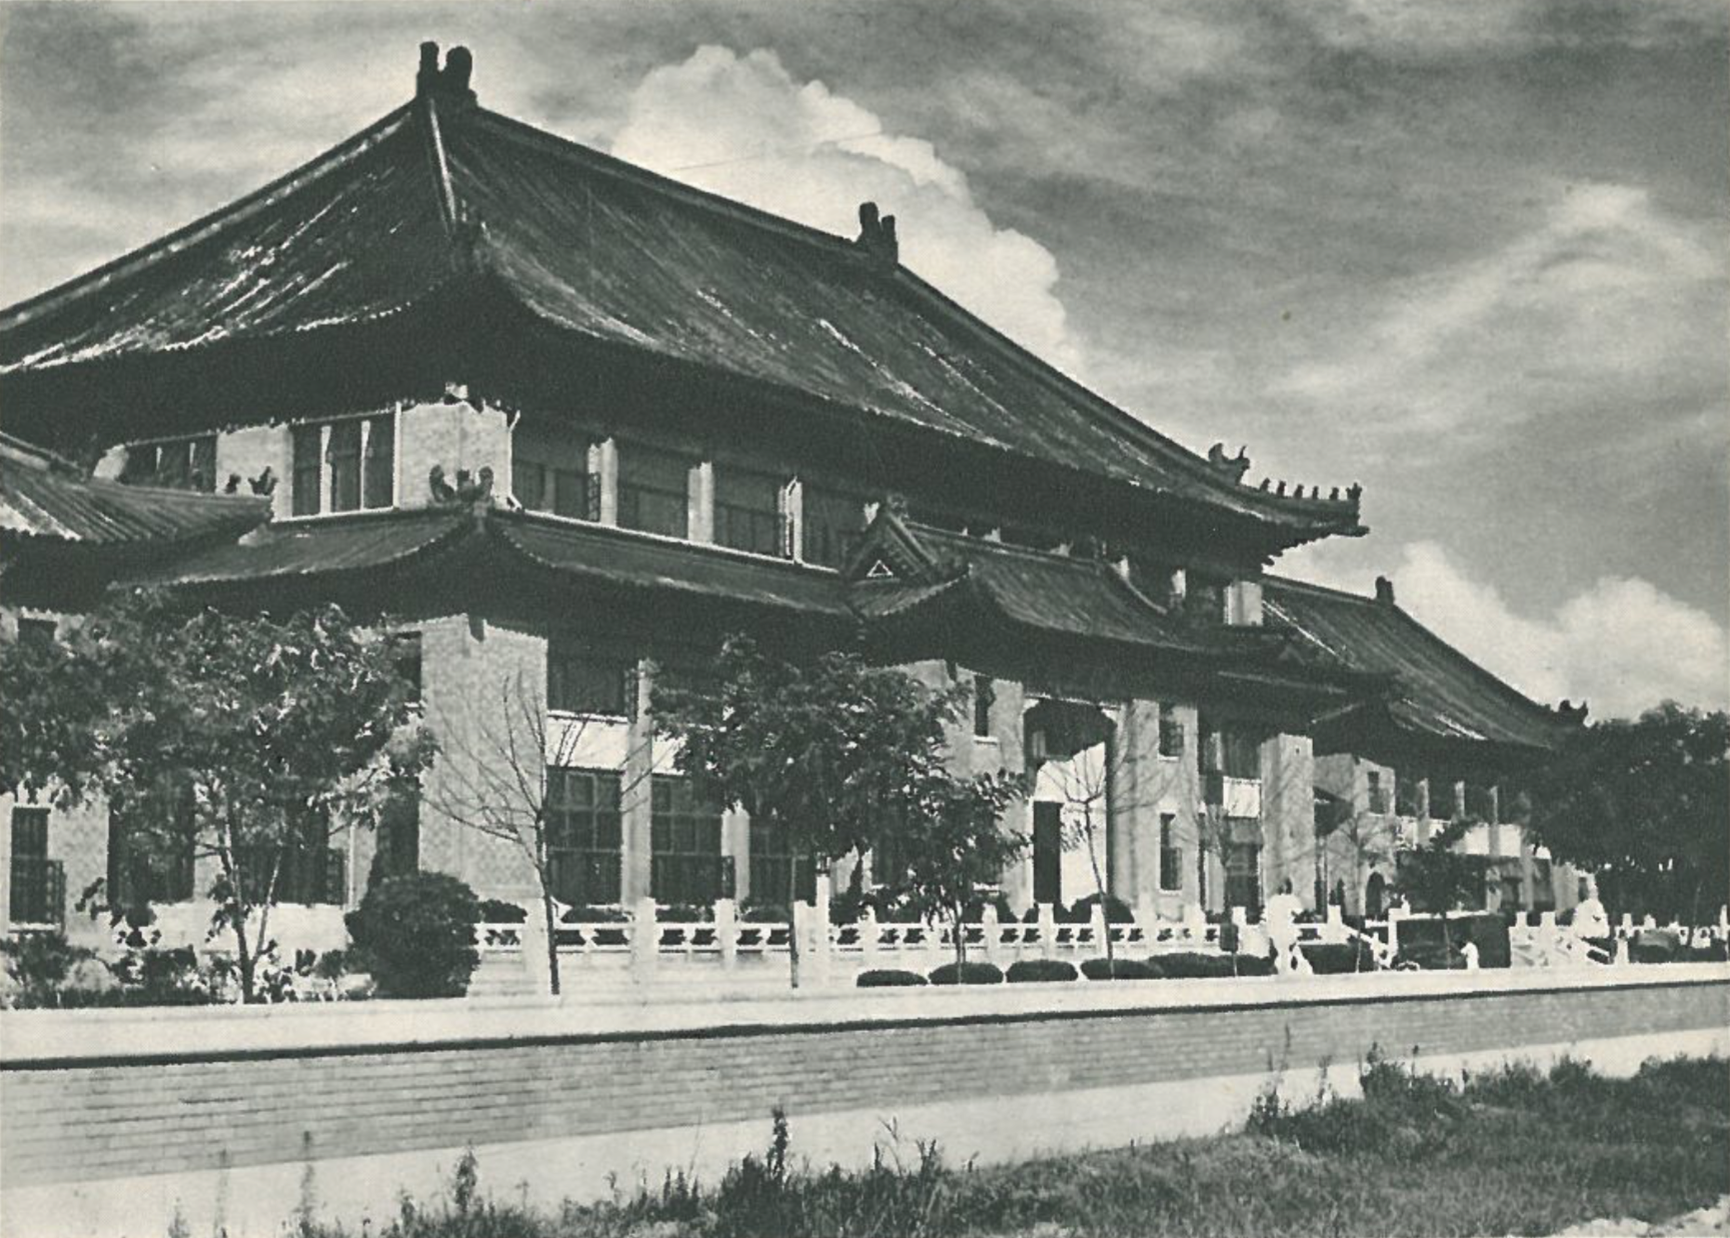 Fig.1: 'The Railway Administration Building' 鐵道部, from K.W. Kwok 郭錫麒, The Splendours of Historic Nanking 南京景集, Shanghai: Kelly & Walsh, 1933: plate no.63.